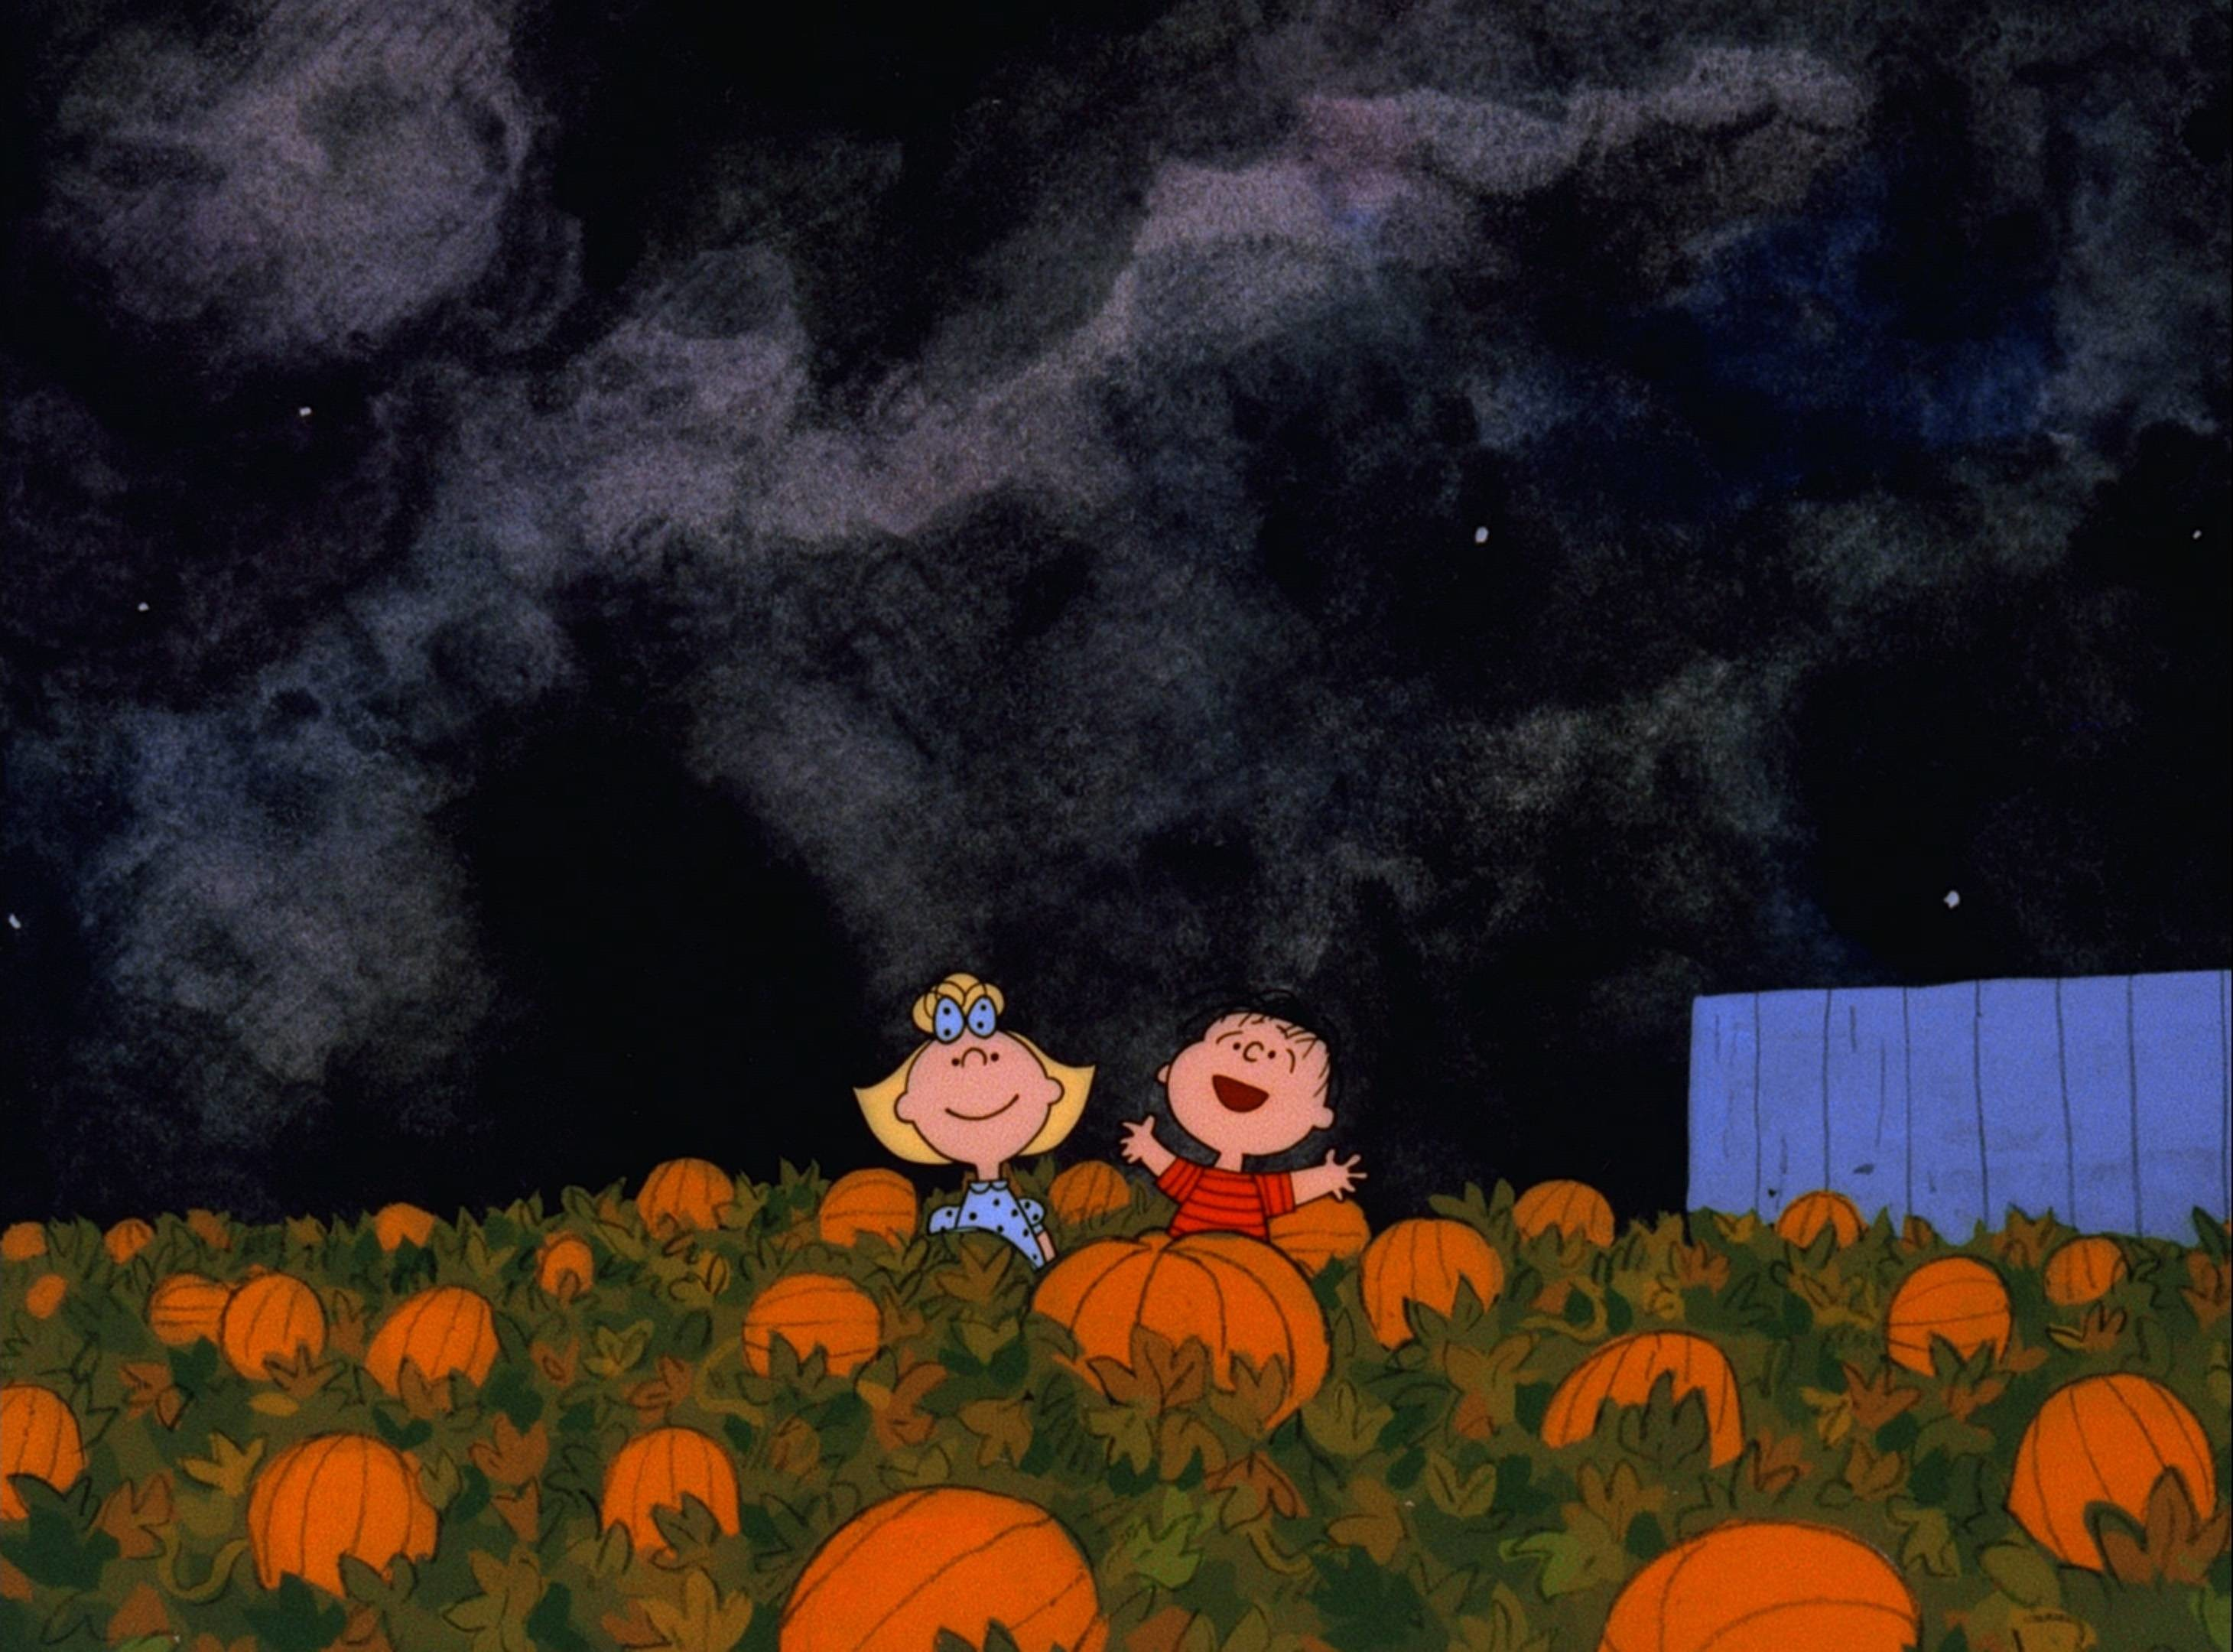 2920x2160 Charlie Brown Halloween Wallpapers - Viewing Gallery